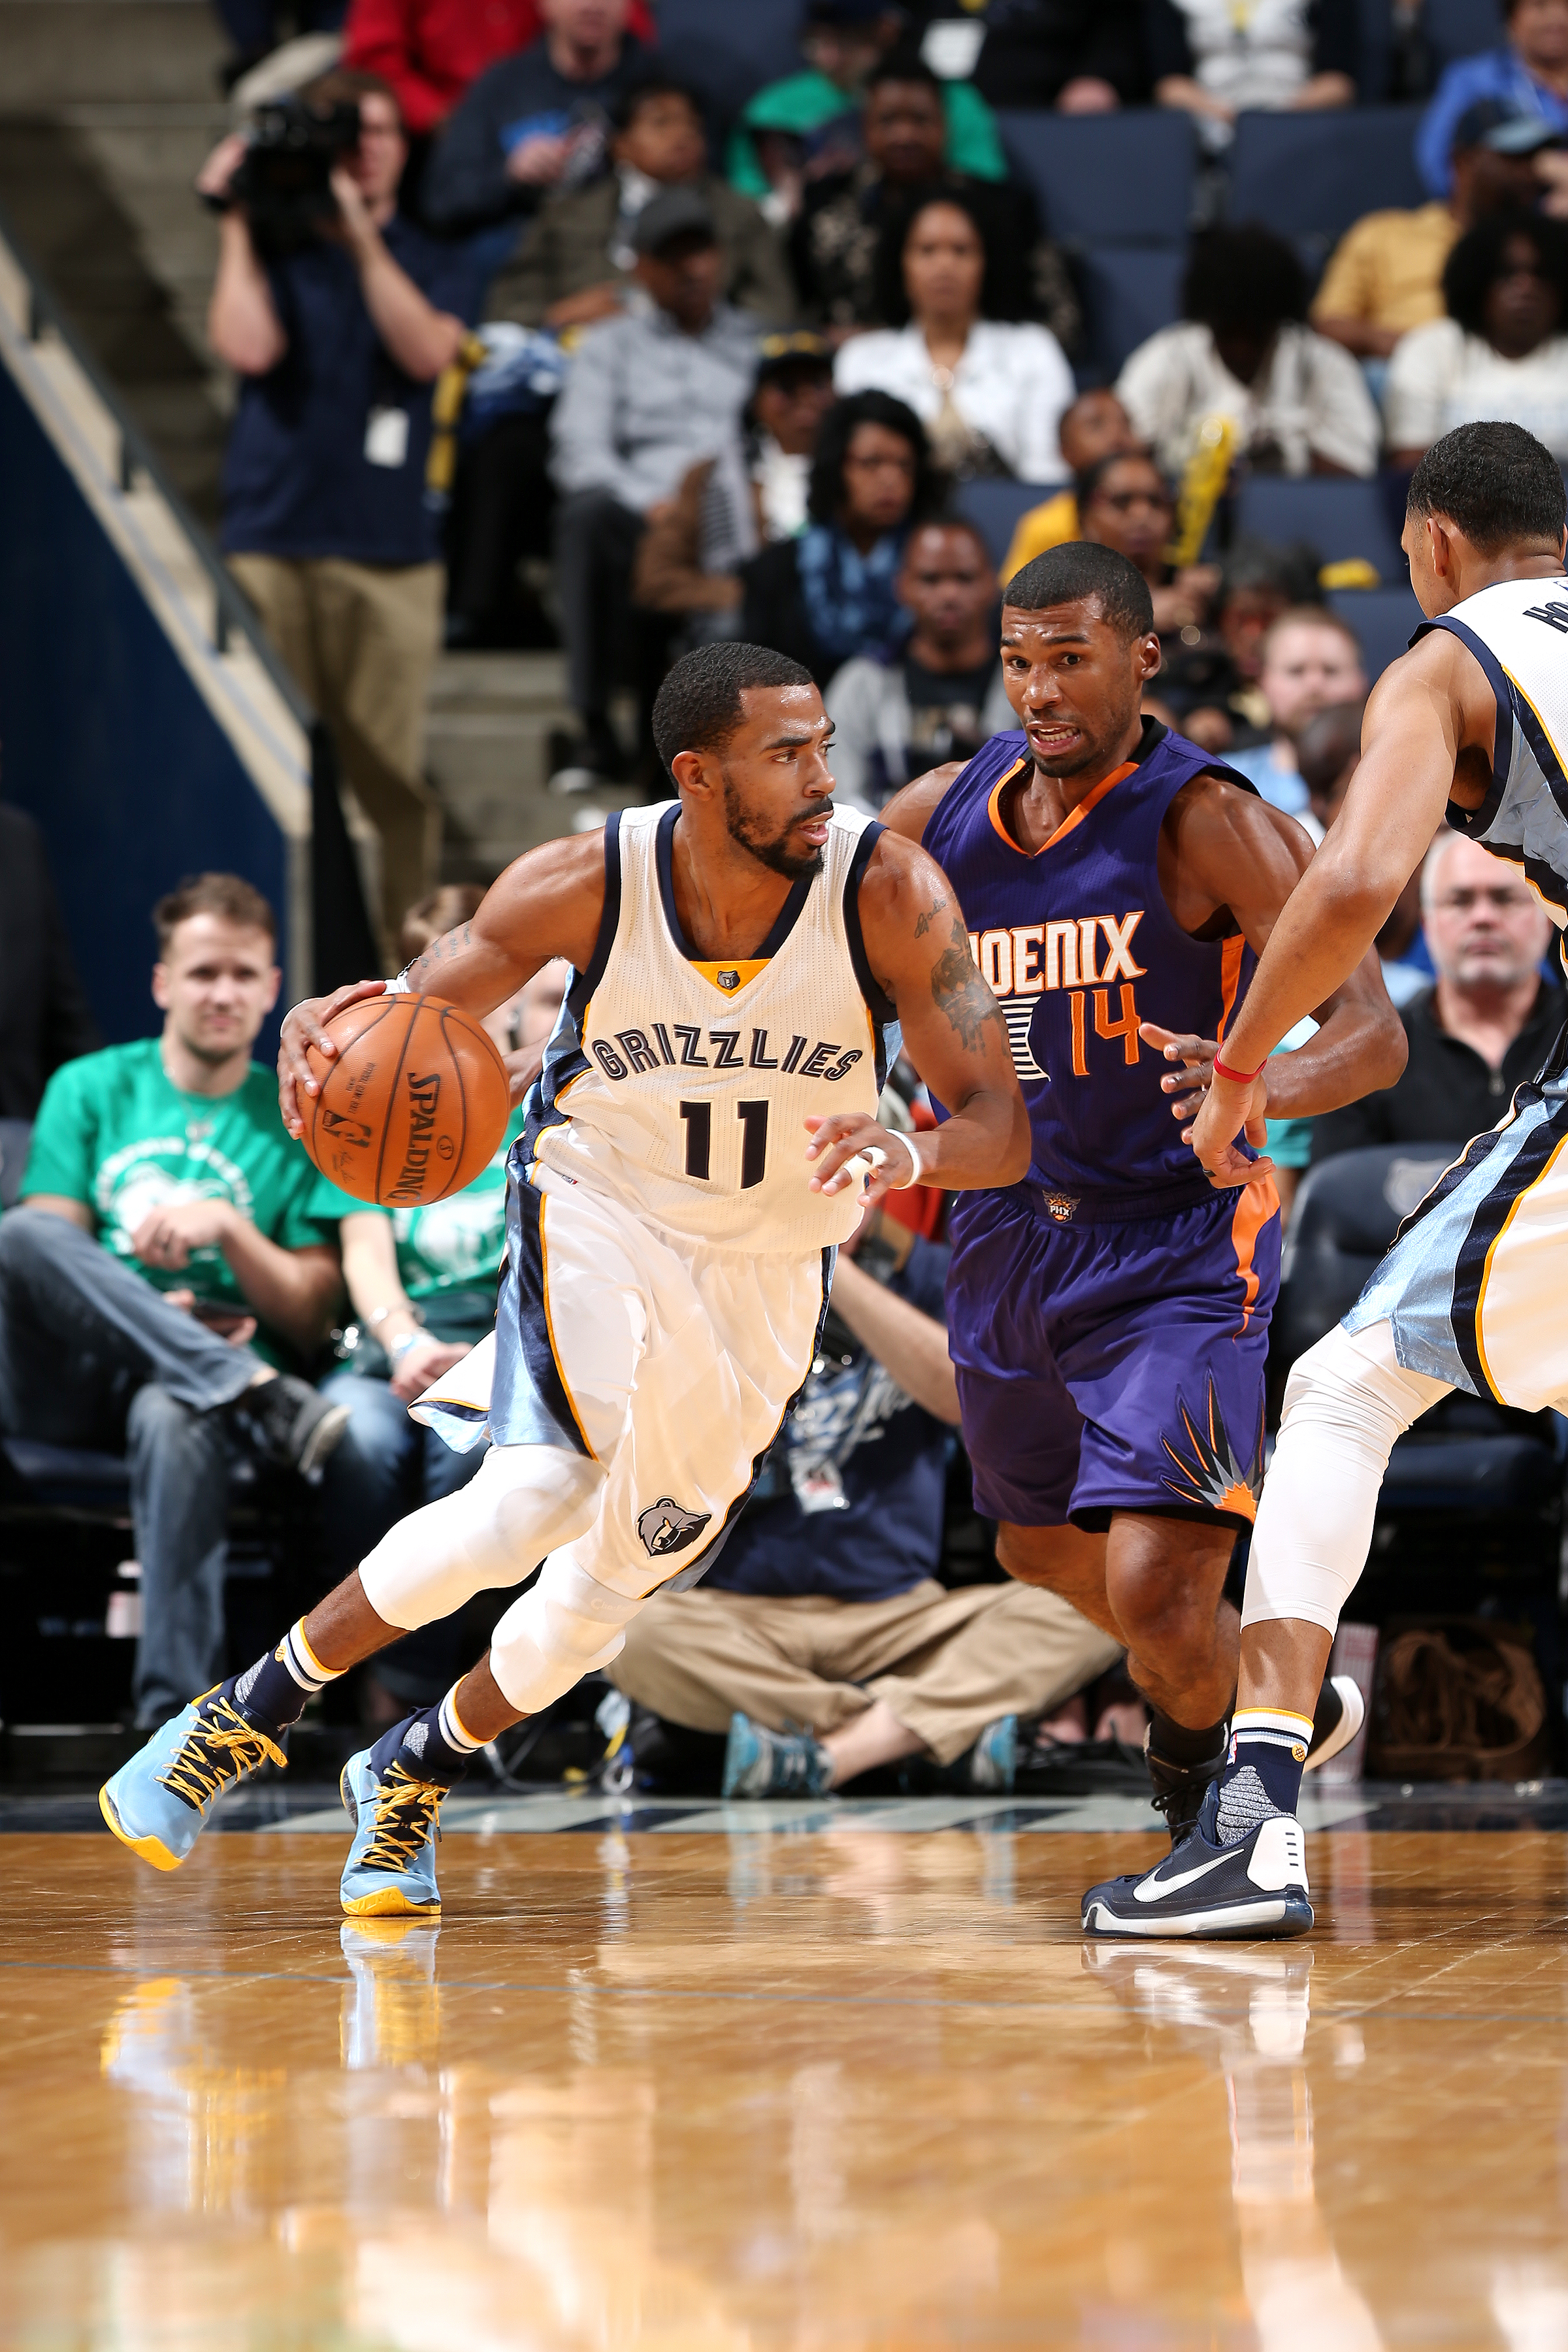 MEMPHIS, TN - MARCH 6: Mike Conley #11 of the Memphis Grizzlies handles the ball during the game against the Phoenix Suns on March 6, 2016 at FedExForum in Memphis, Tennessee. (Photo by Joe Murphy/NBAE via Getty Images)